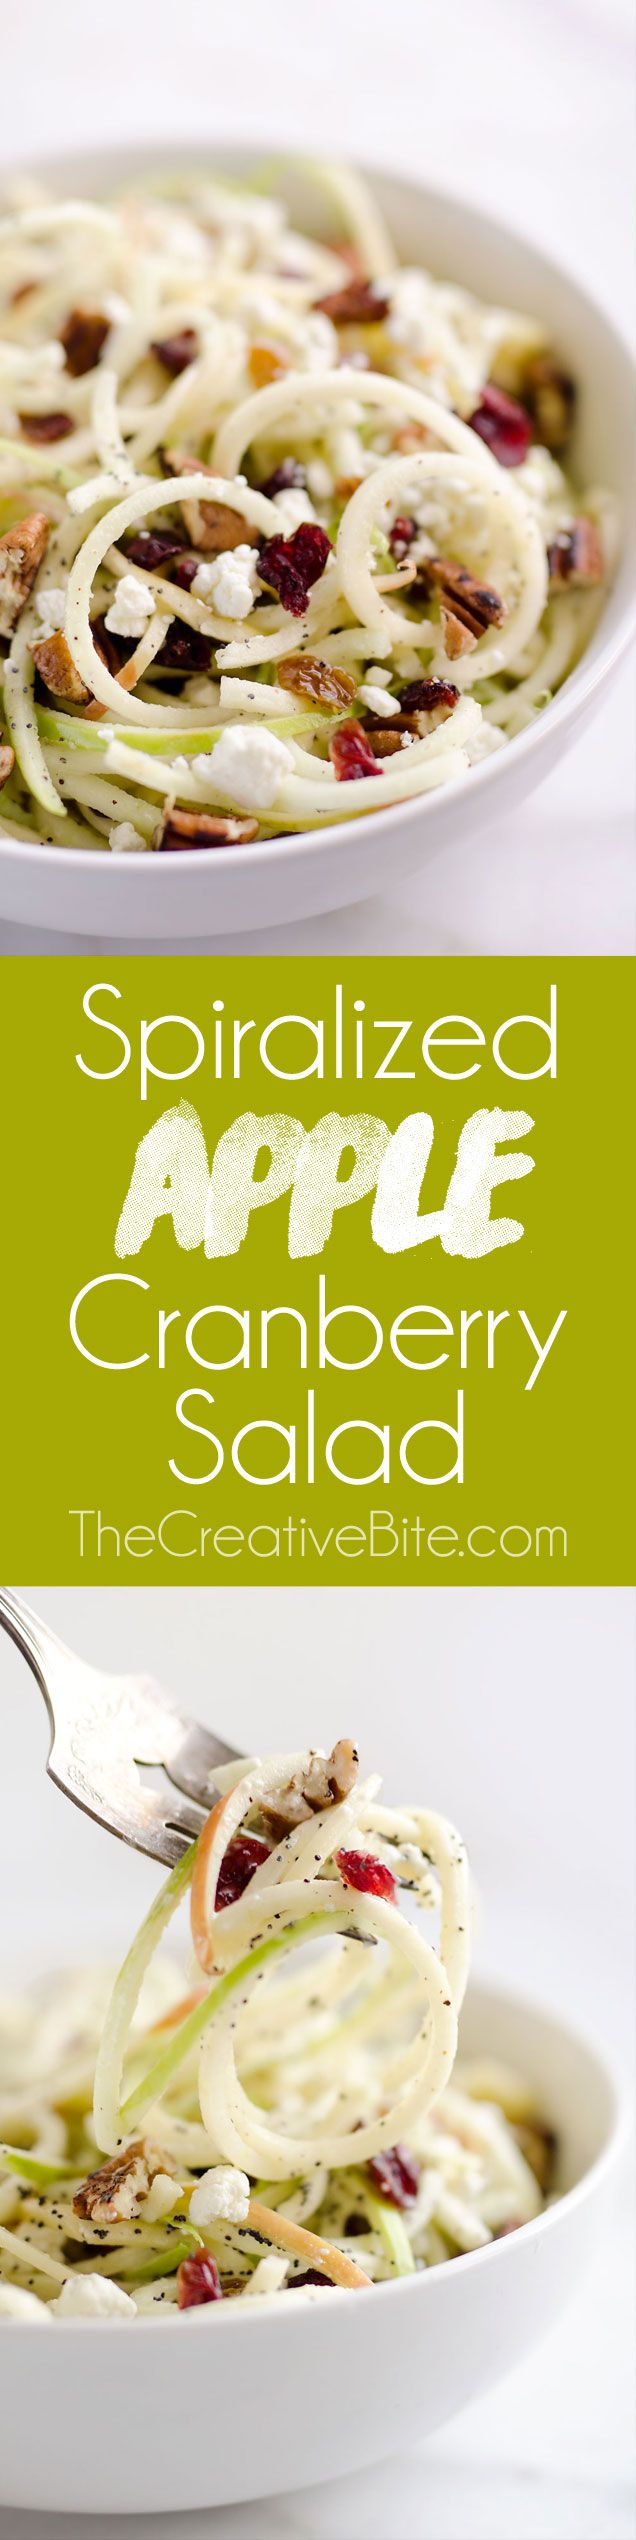 Spiralized Apple Cranberry Salad is an easy 10 minute recipe made with crunchy apples, cranberries, pecans and goat cheese all tossed in a light Citrus Poppy Seed Dressing, for a healthy and delicious side dish or vegetarian entree you will love! #Spiralized #Healthy #Salad #LowFat #Apple